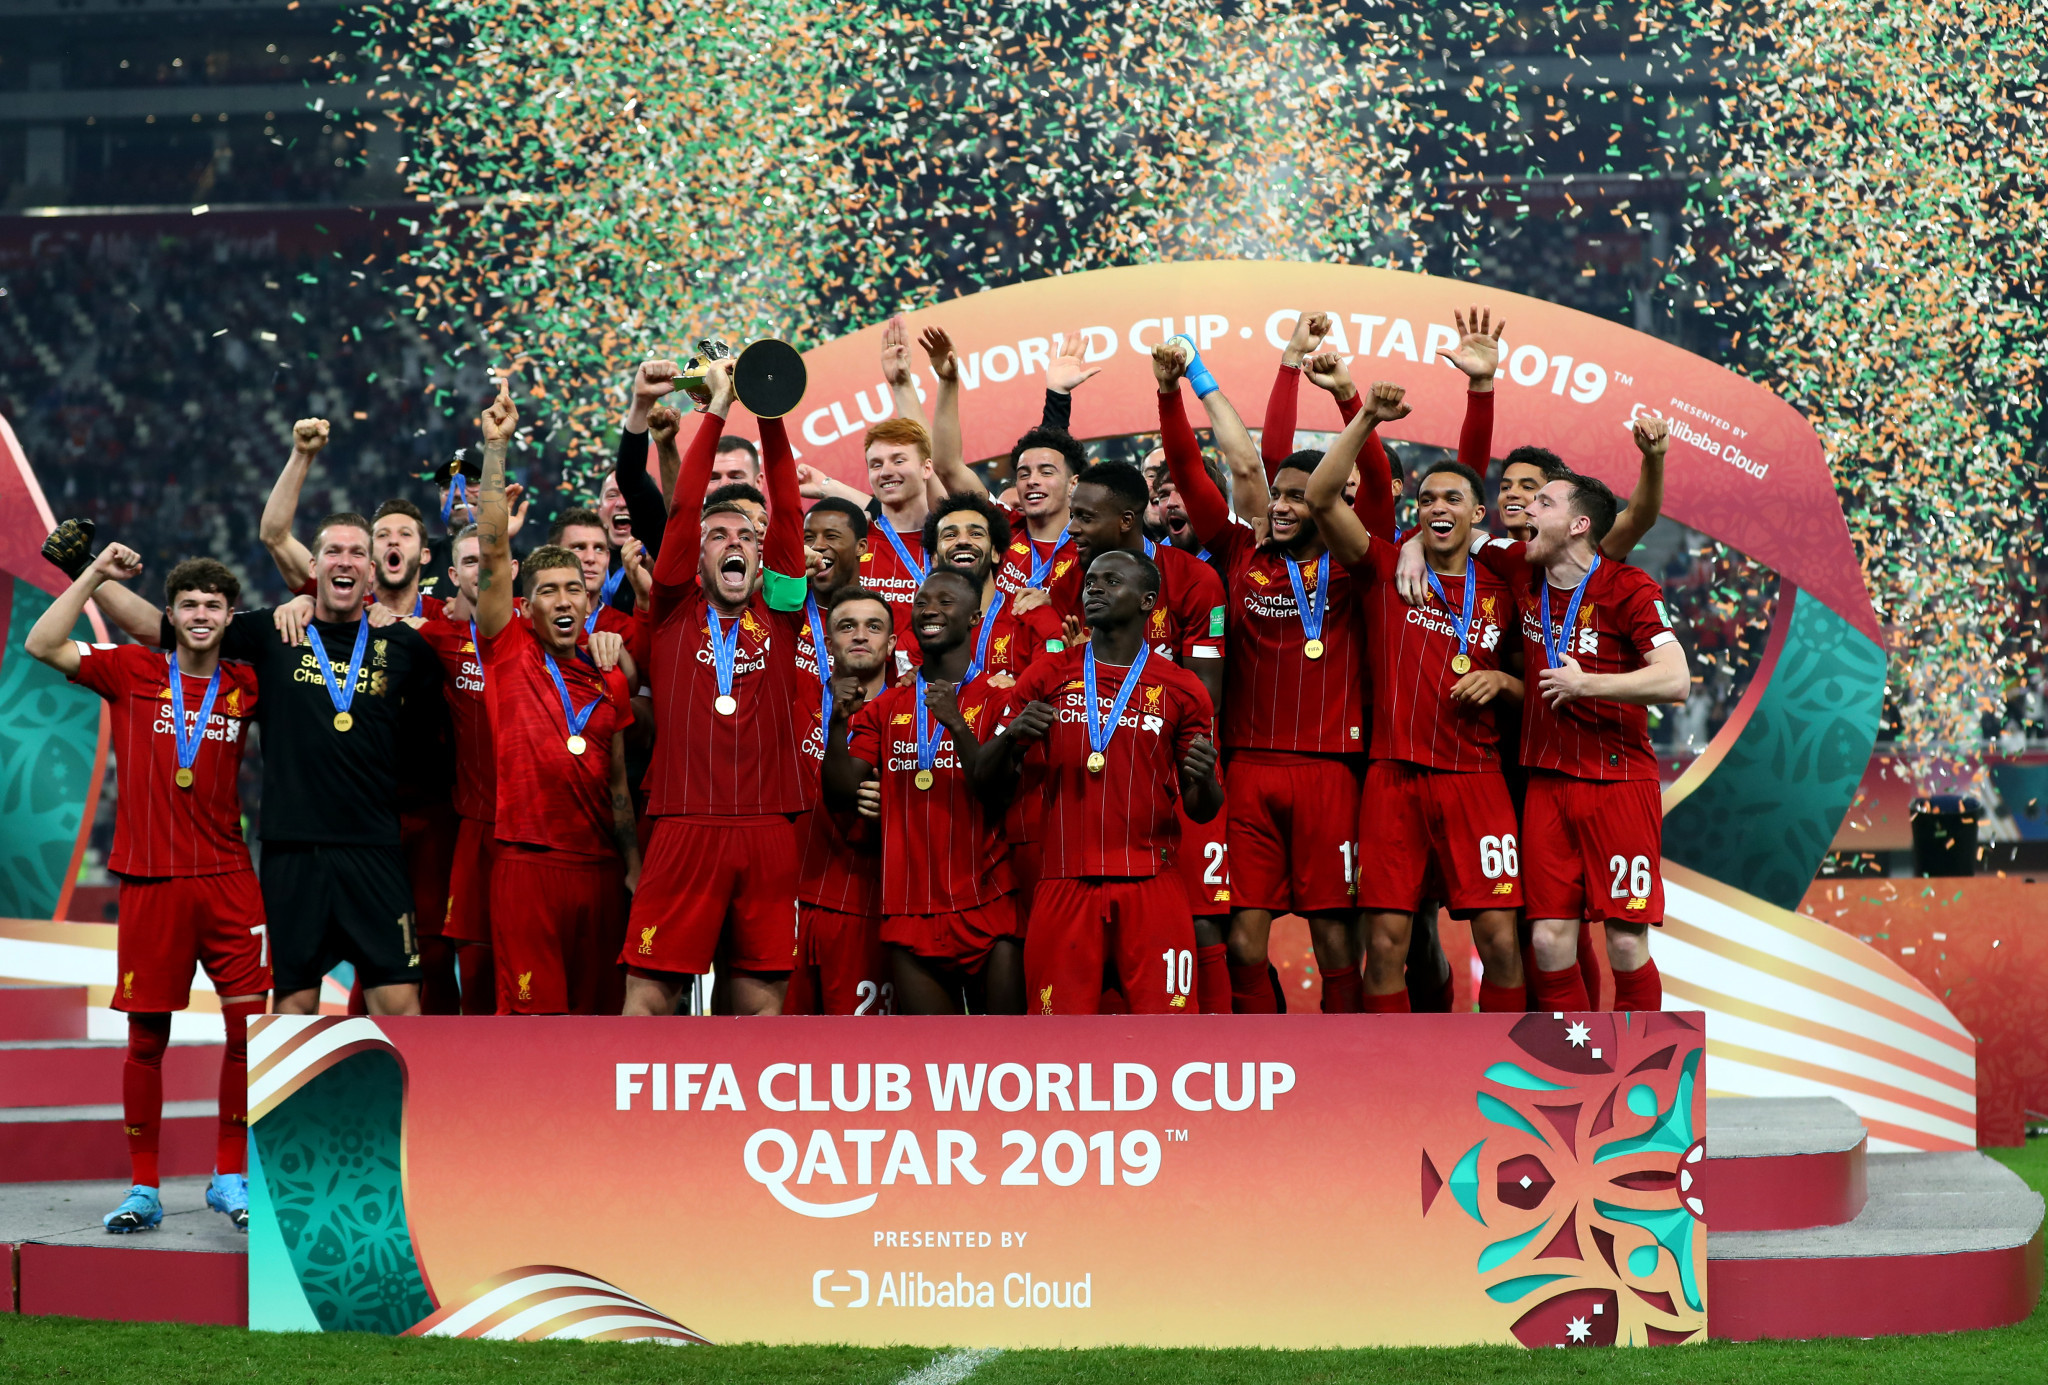 Liverpool won the FIFA Club World Cup in Qatar in December ©Getty Images